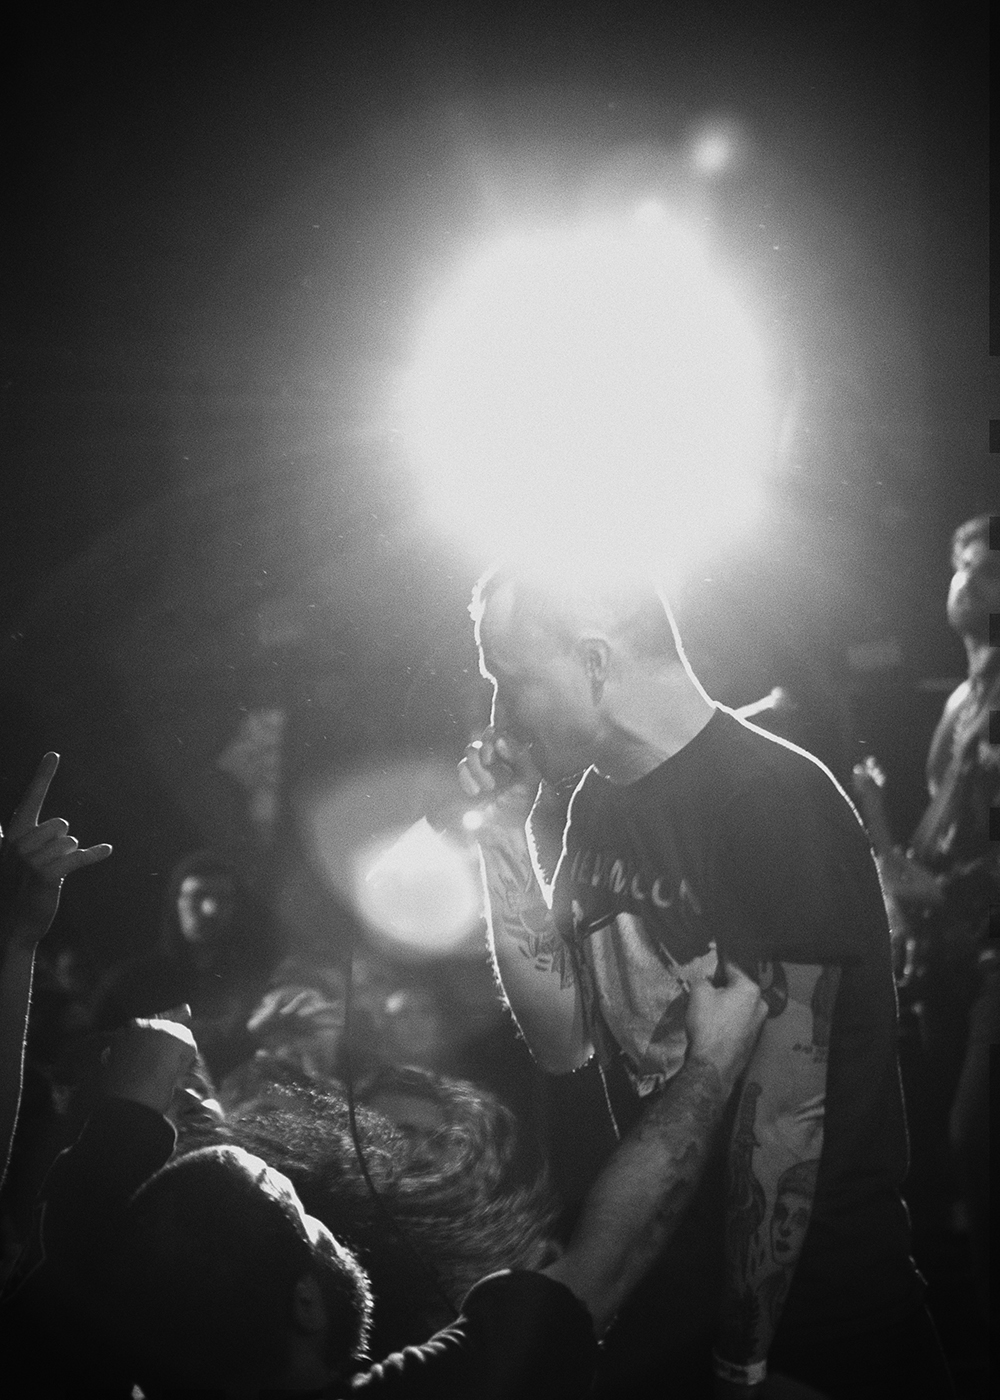 ToucheAmore-3